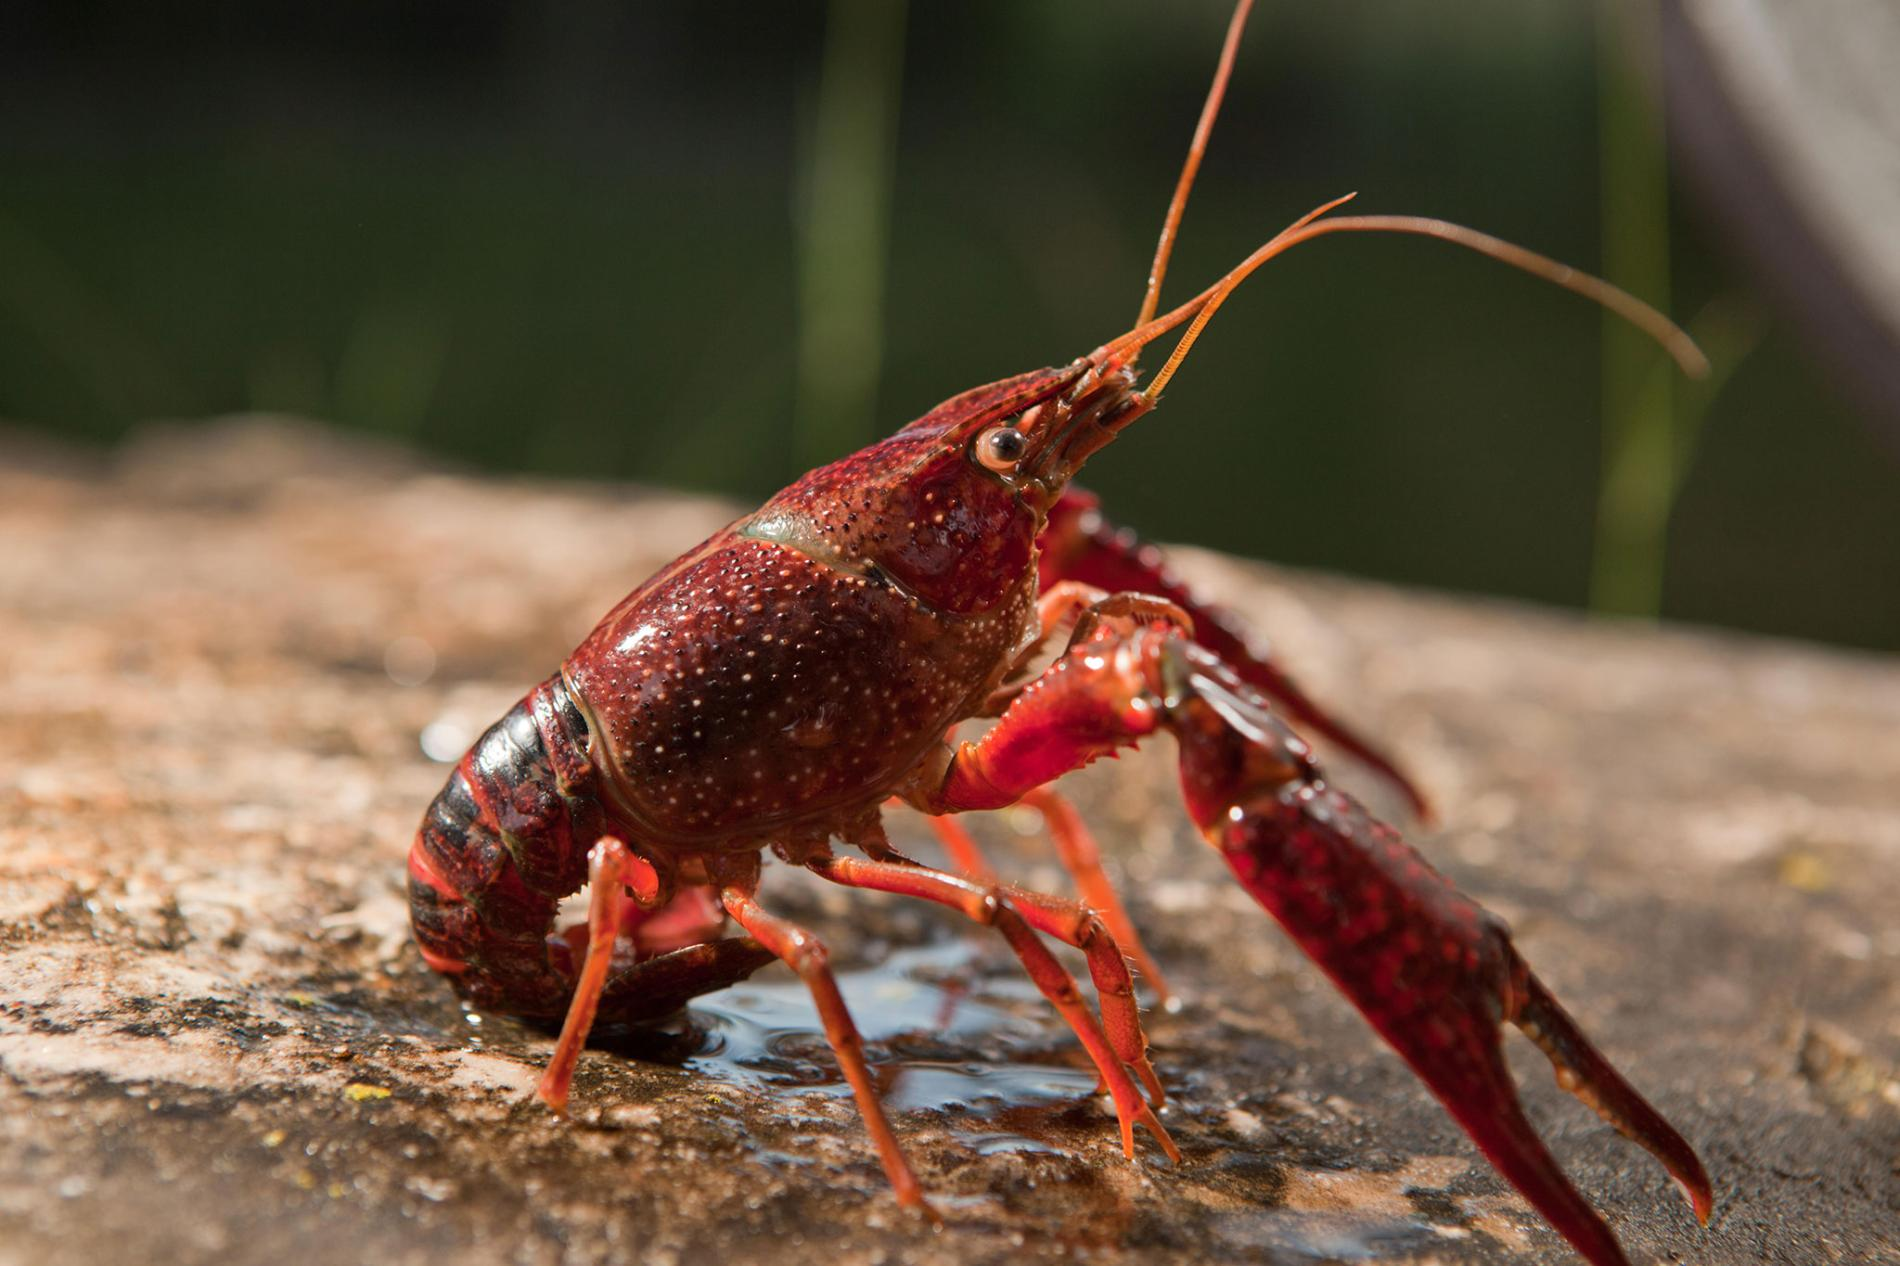 The invasive red swamp crayfish (Procambarus clarkii) increases infection of the amphibian chytrid fungus (Batrachochytrium dendrobatidis)